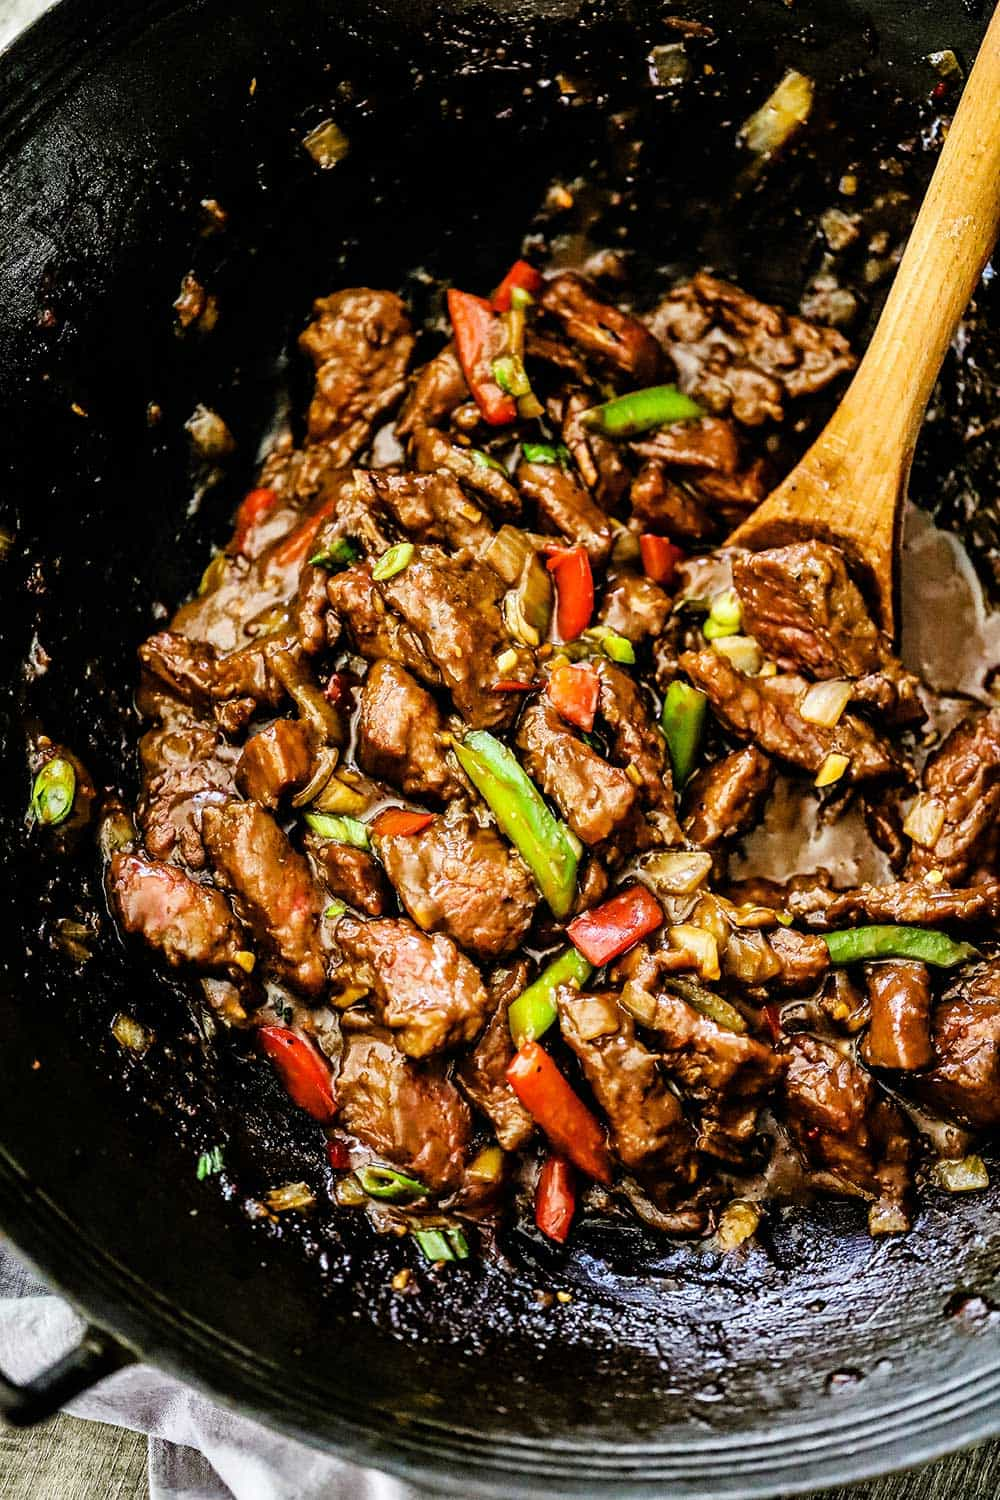 A wok filled with fully cooked mongolian beef with a wooden spoon inserted into the mixture.